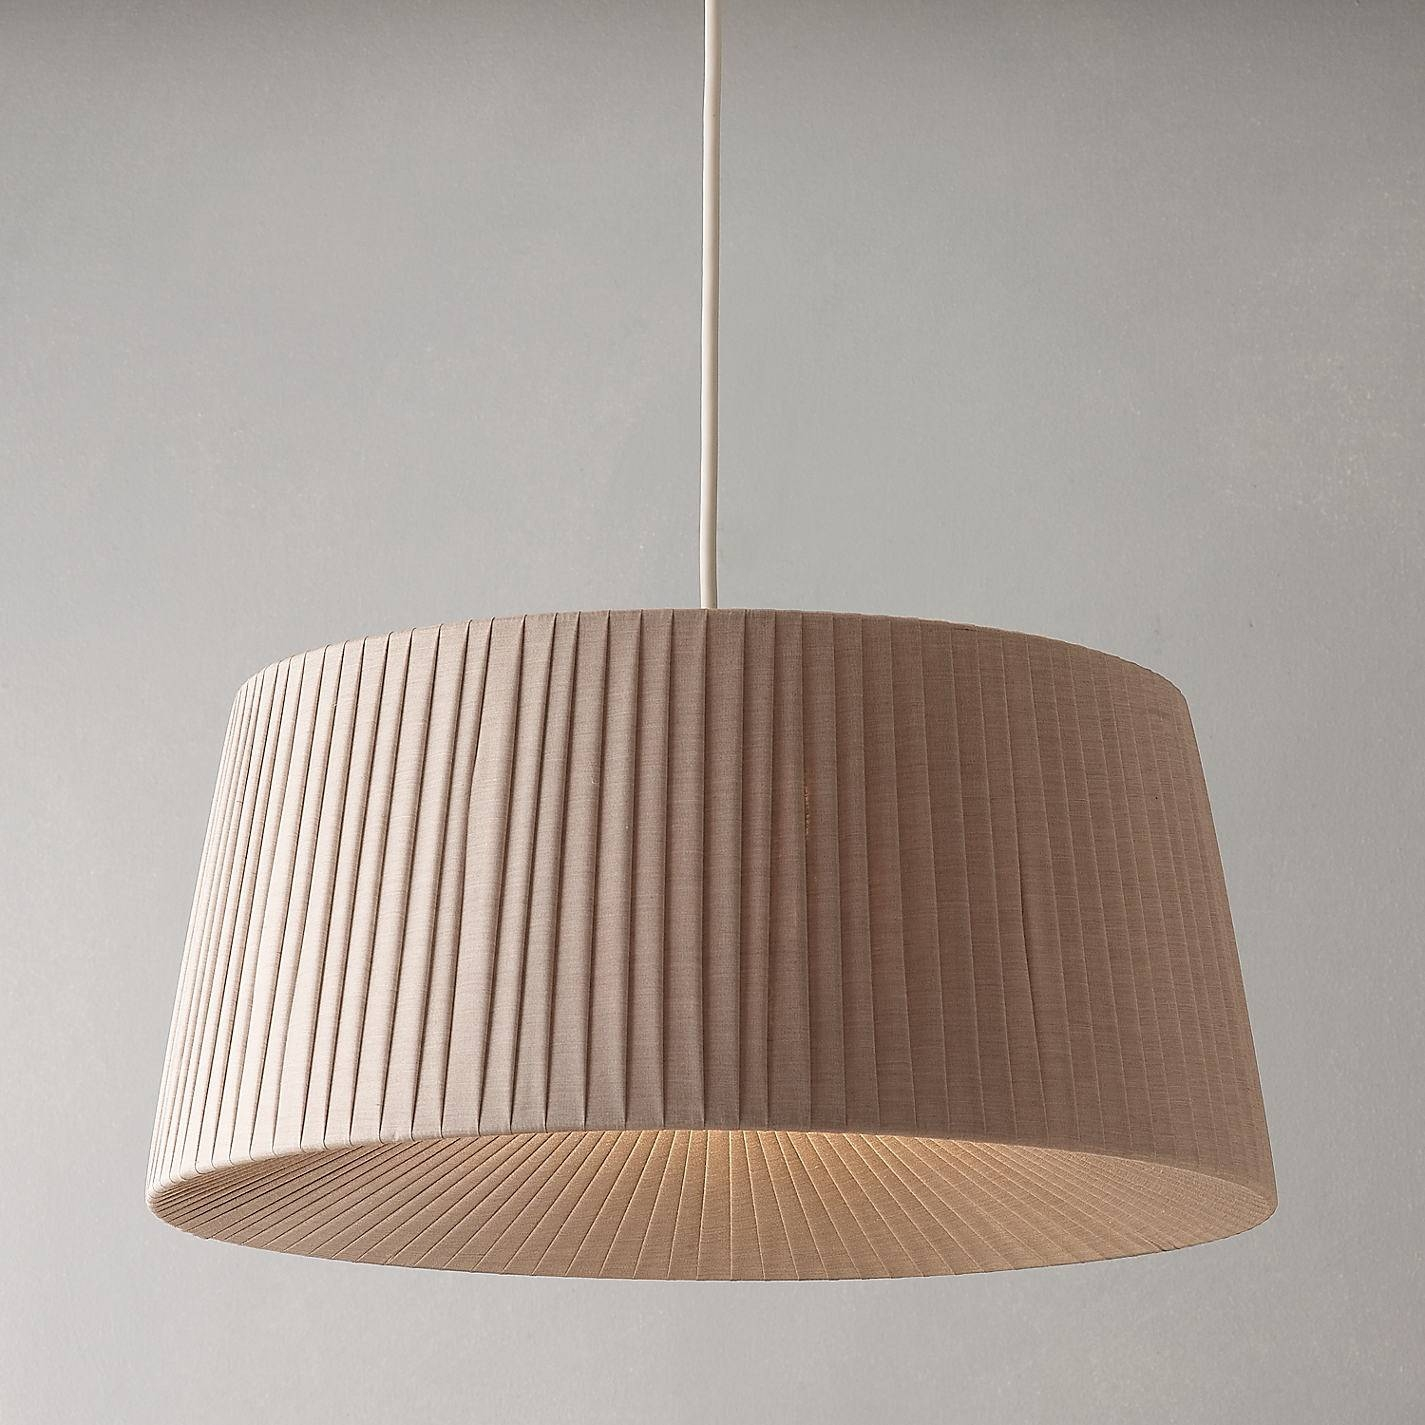 Featured Photo of John Lewis Ceiling Lights Shades